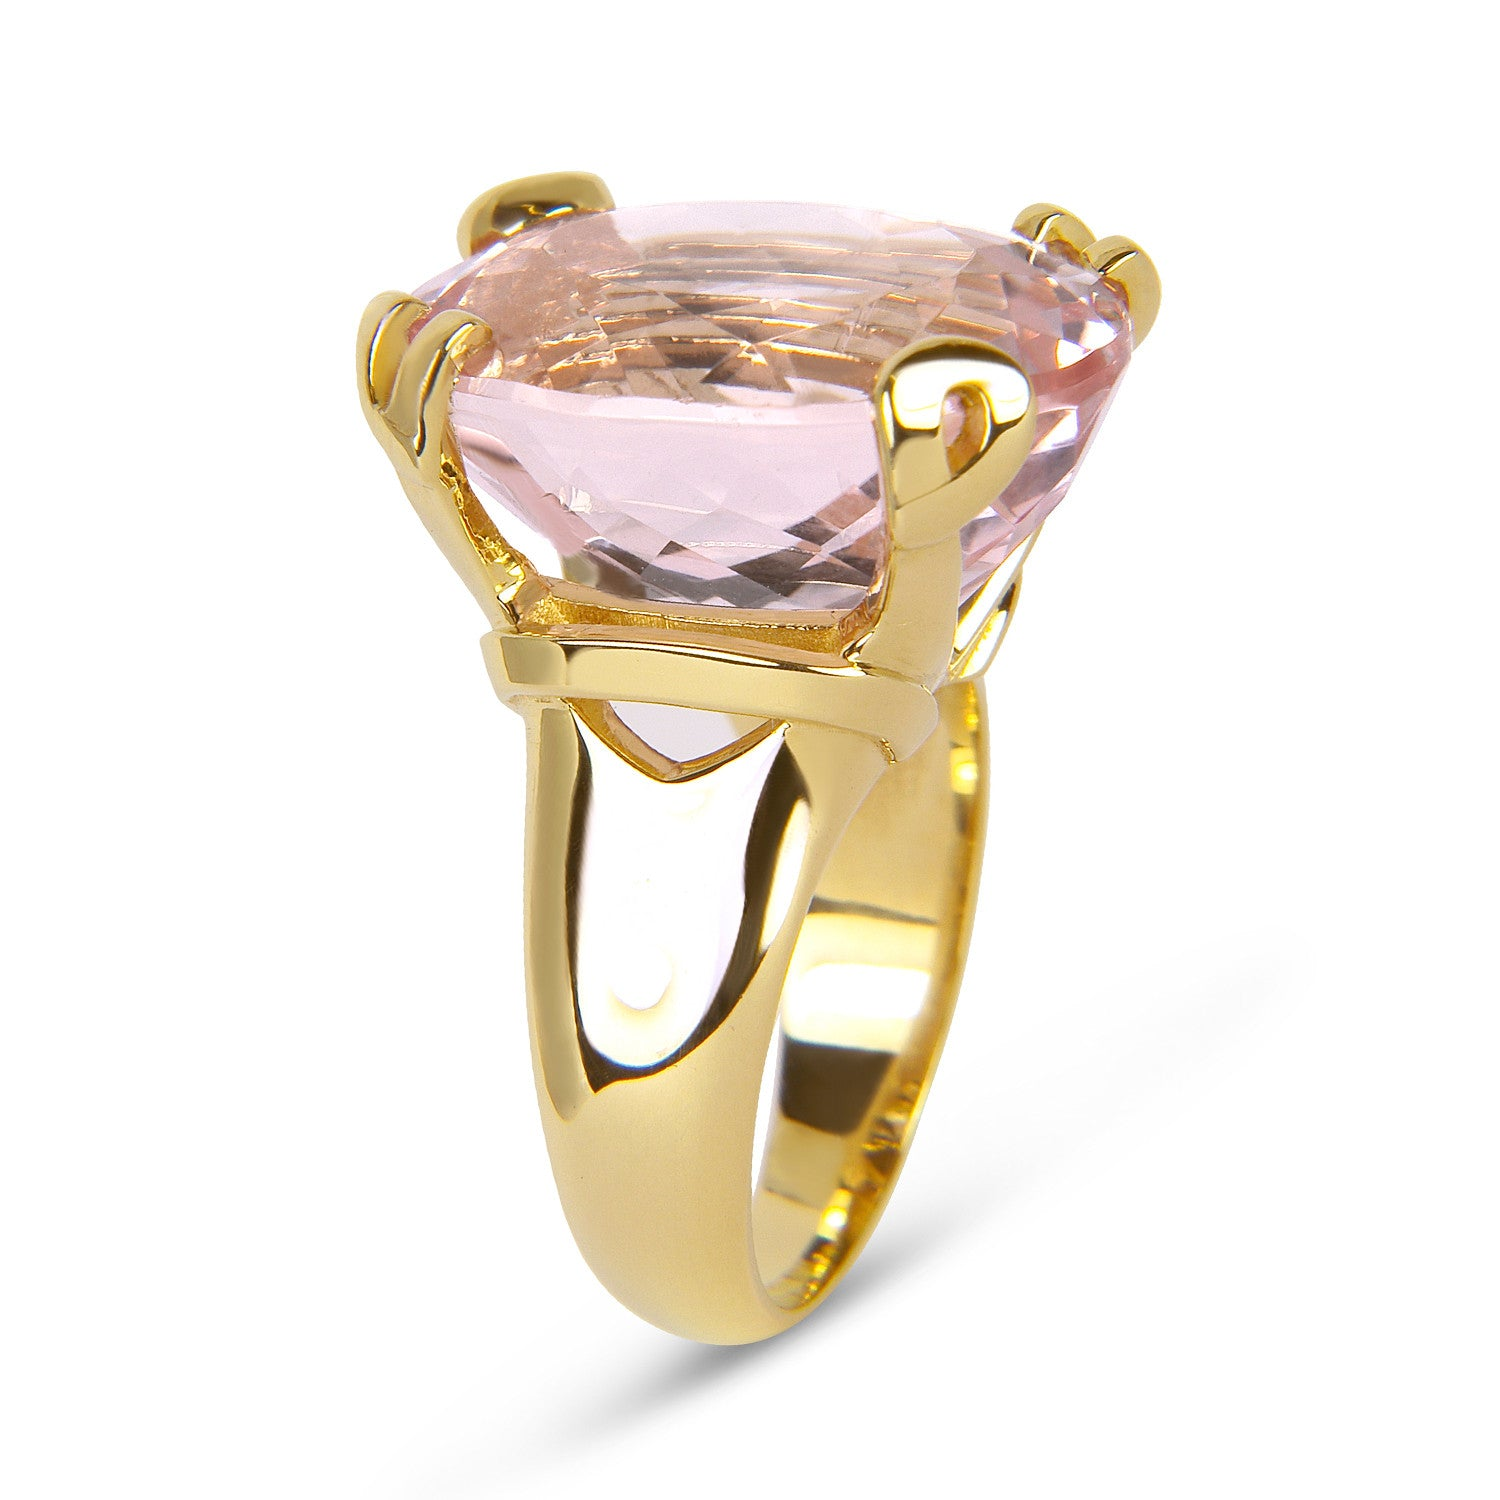 Bespoke Morganite Ring